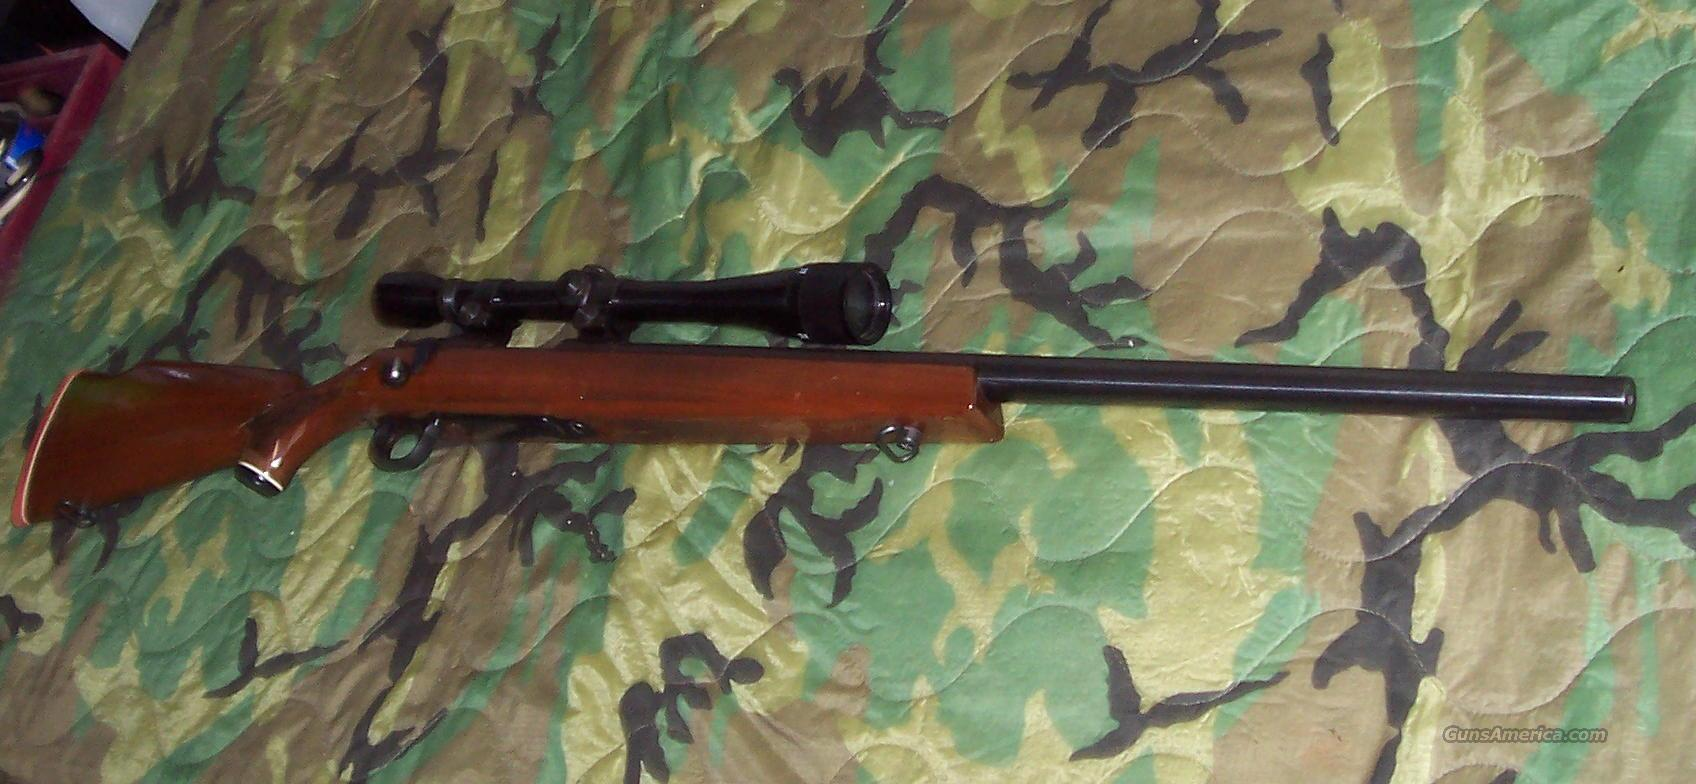 Mossberg 800BV with Scope  Guns > Rifles > Mossberg Rifles > Other Bolt Action